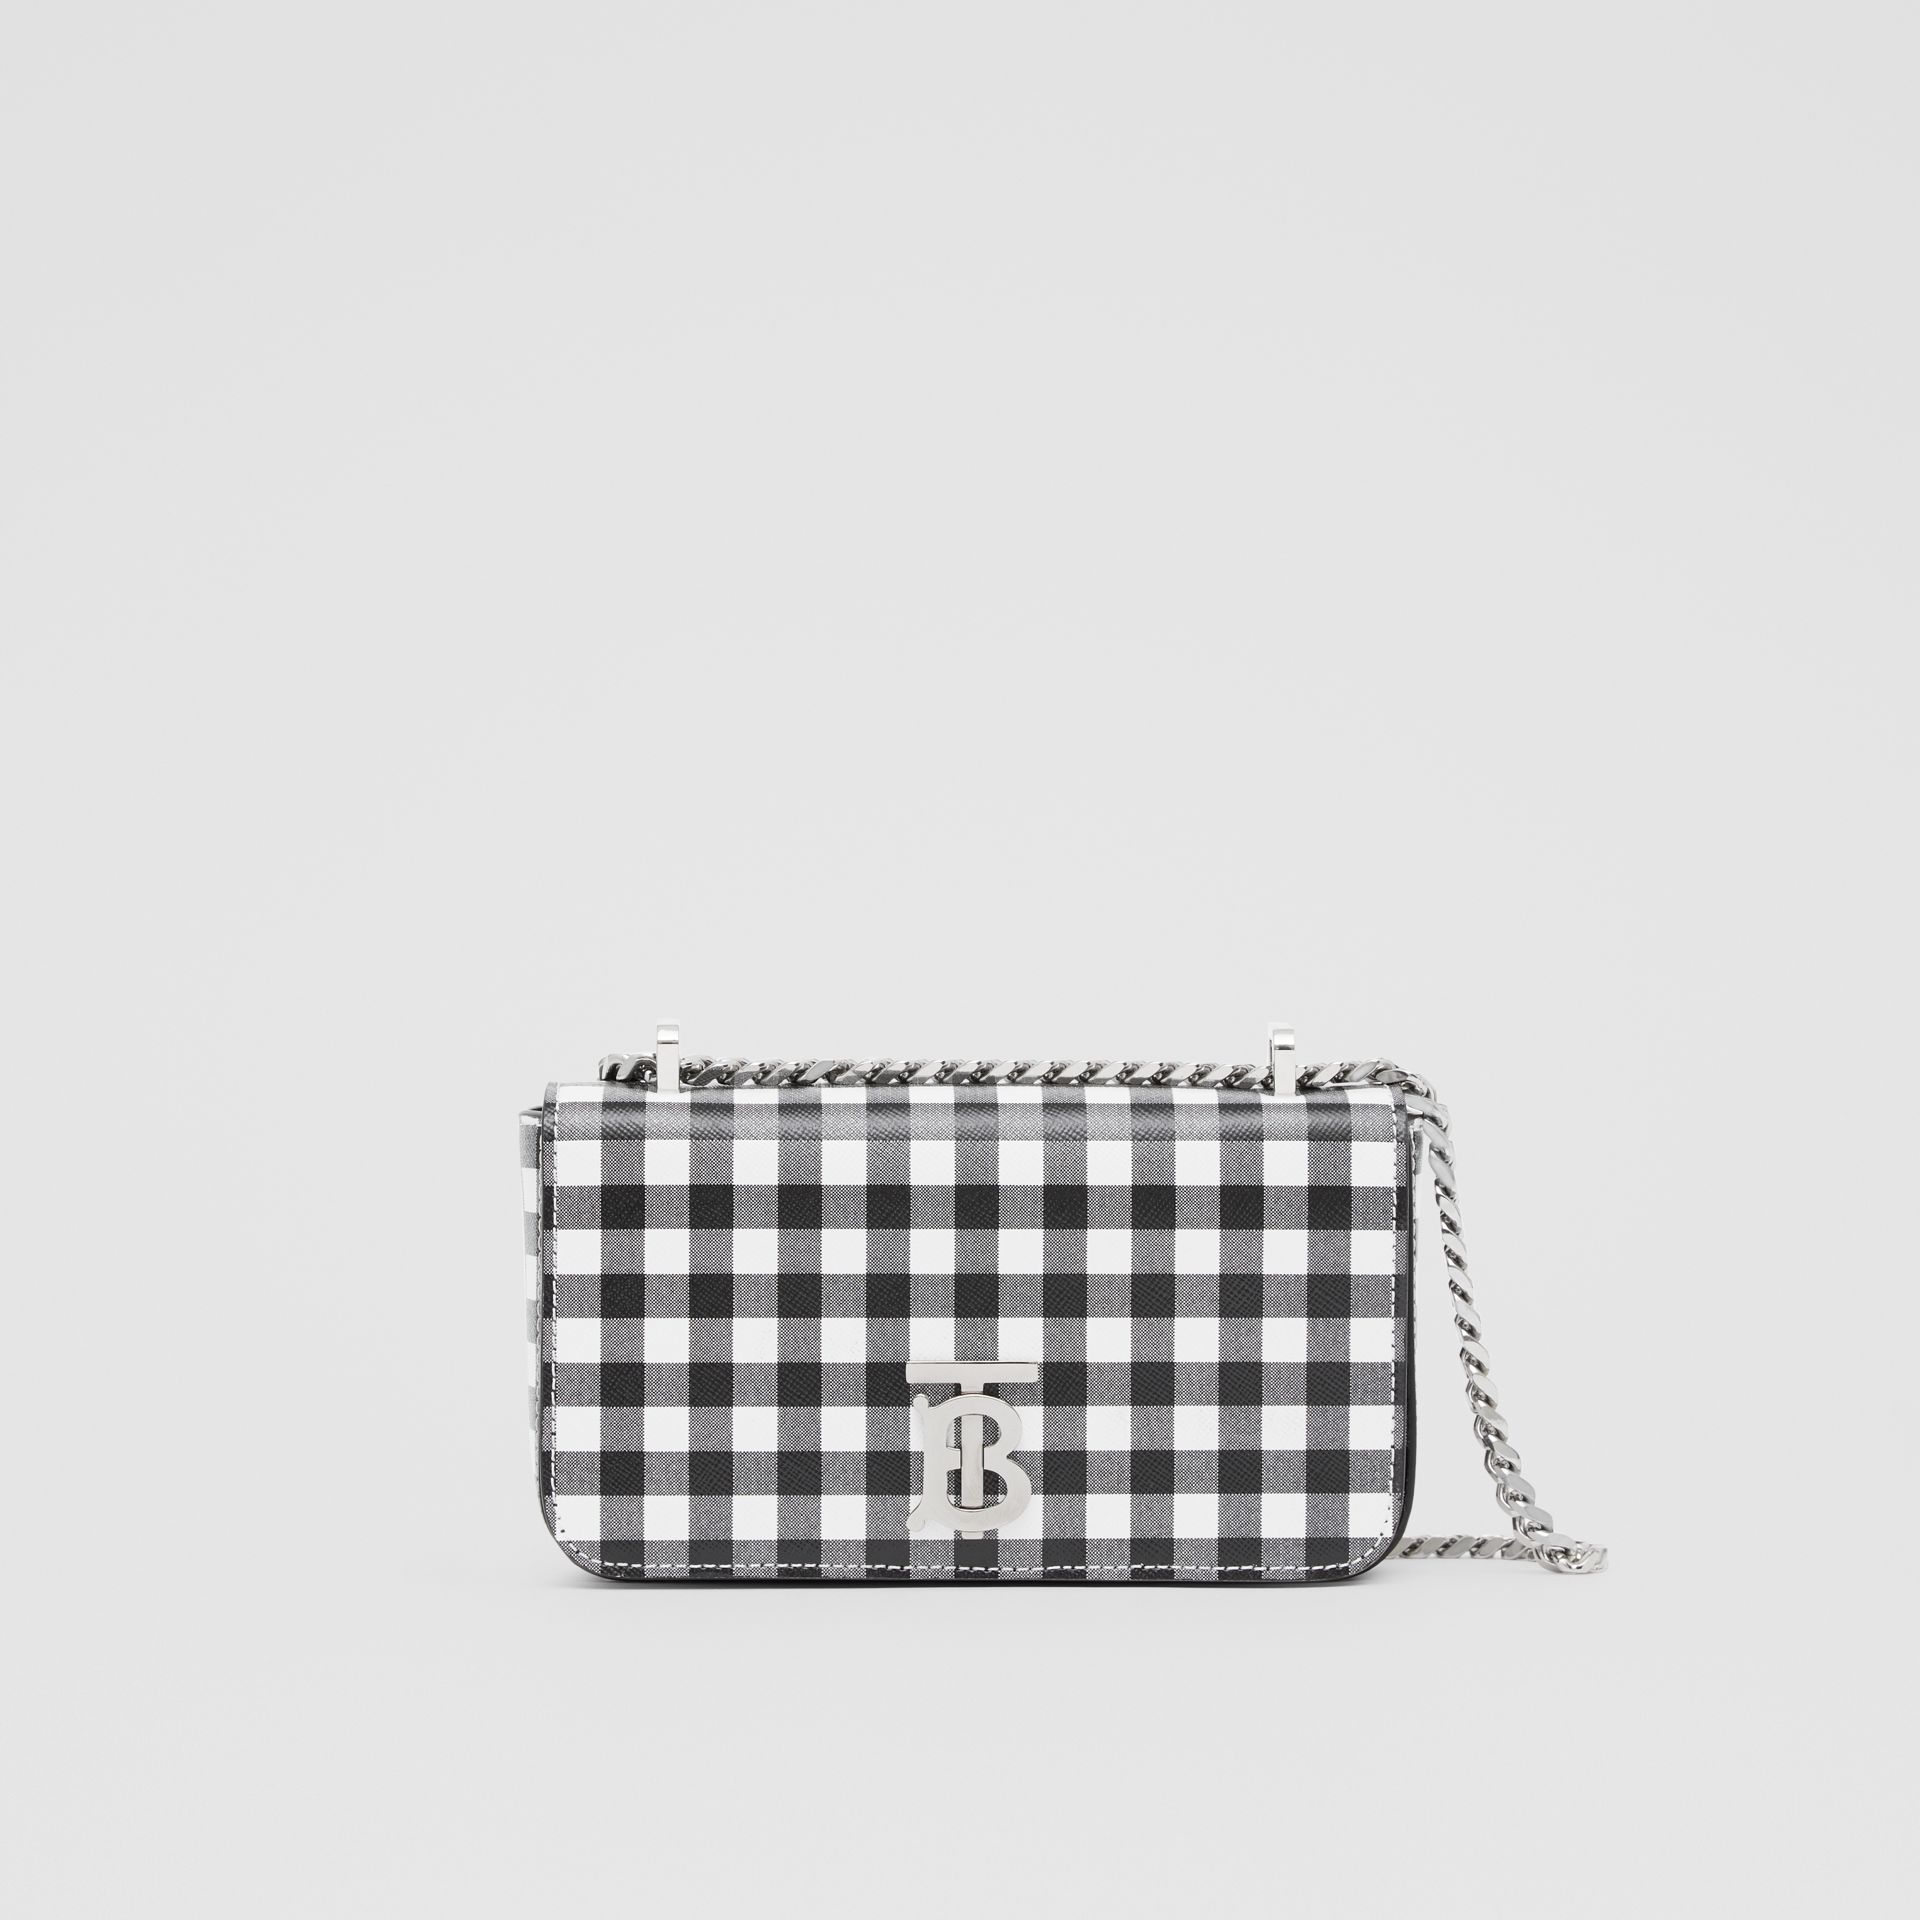 Mini Gingham Leather Lola Bag in Black/white - Women | Burberry - gallery image 0